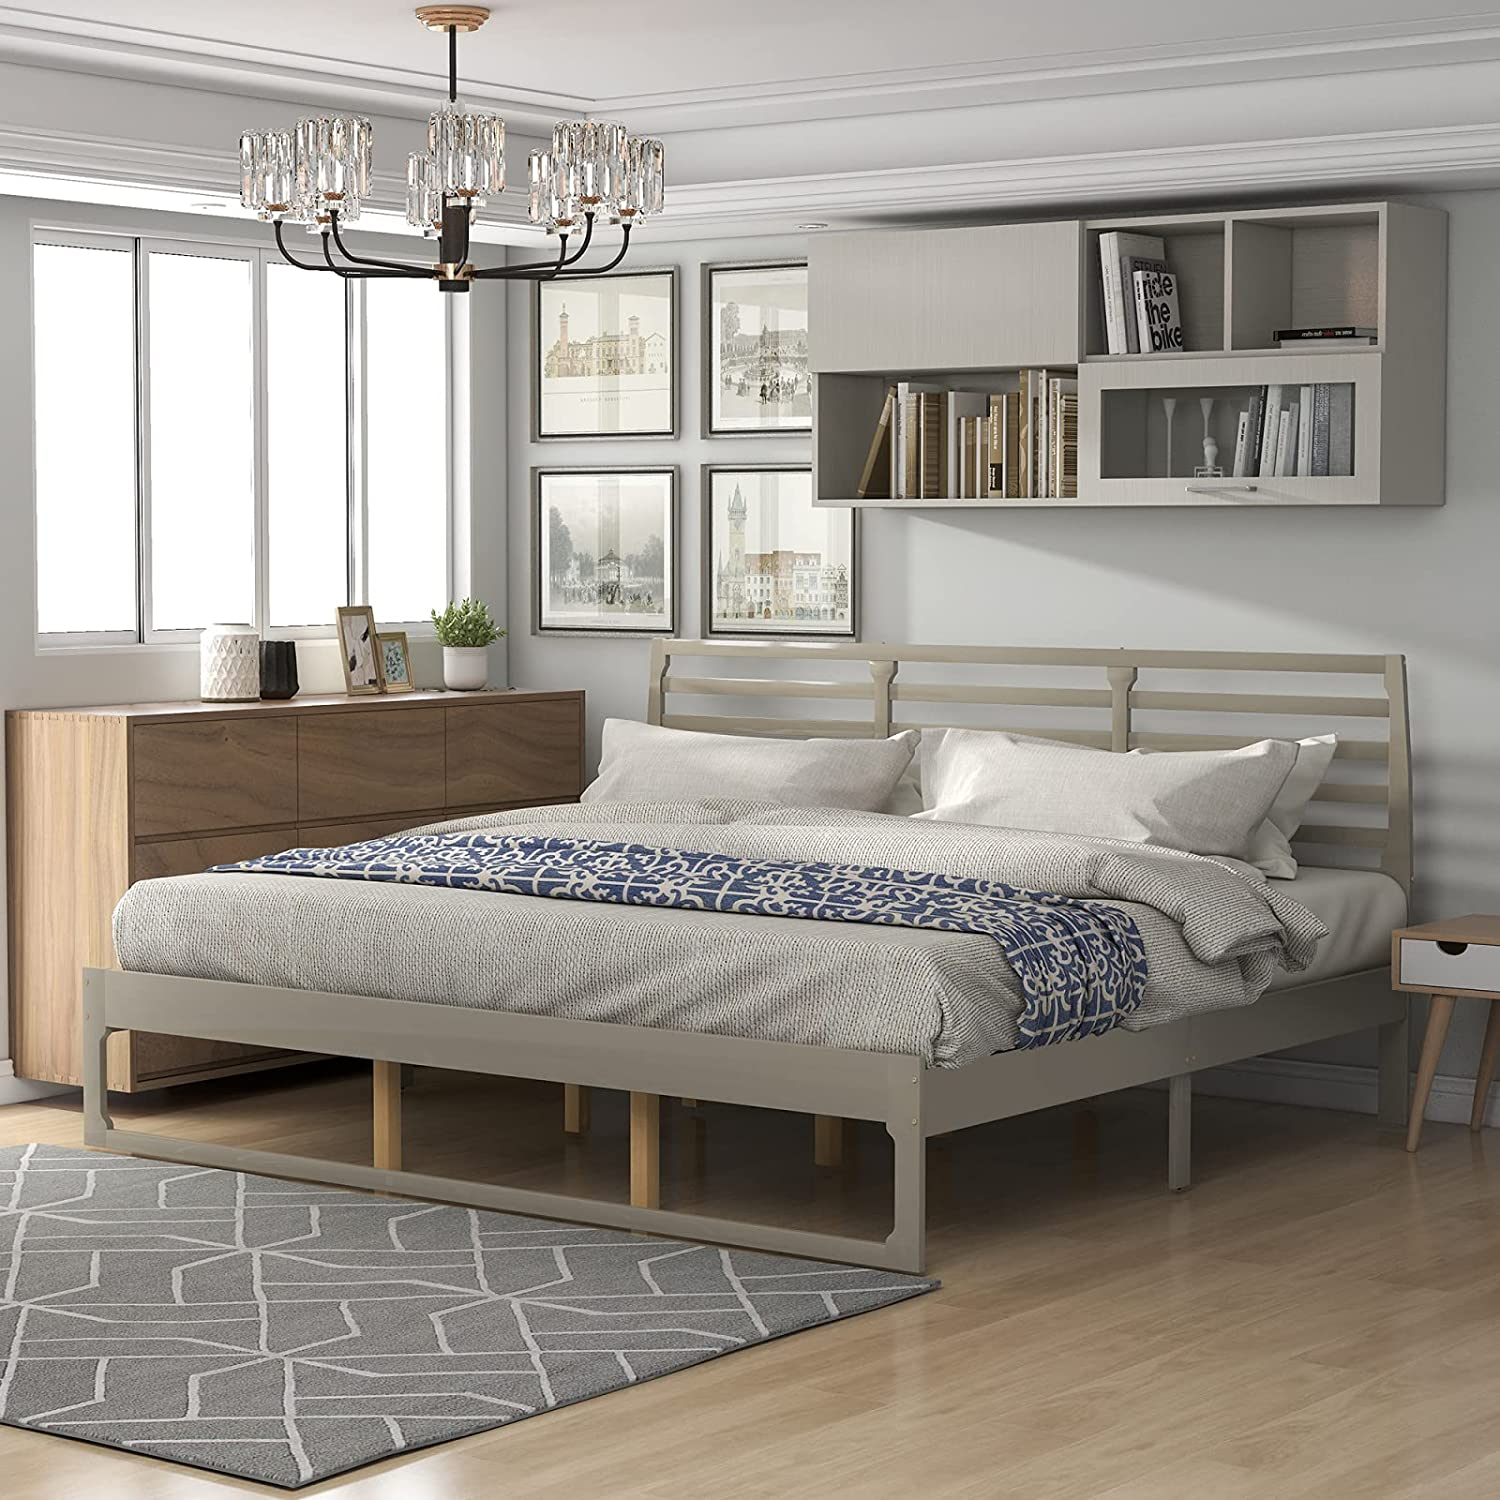 Lazyspace King Size Platform Bed Headboard Super sale Charlotte Mall Wood with Frame